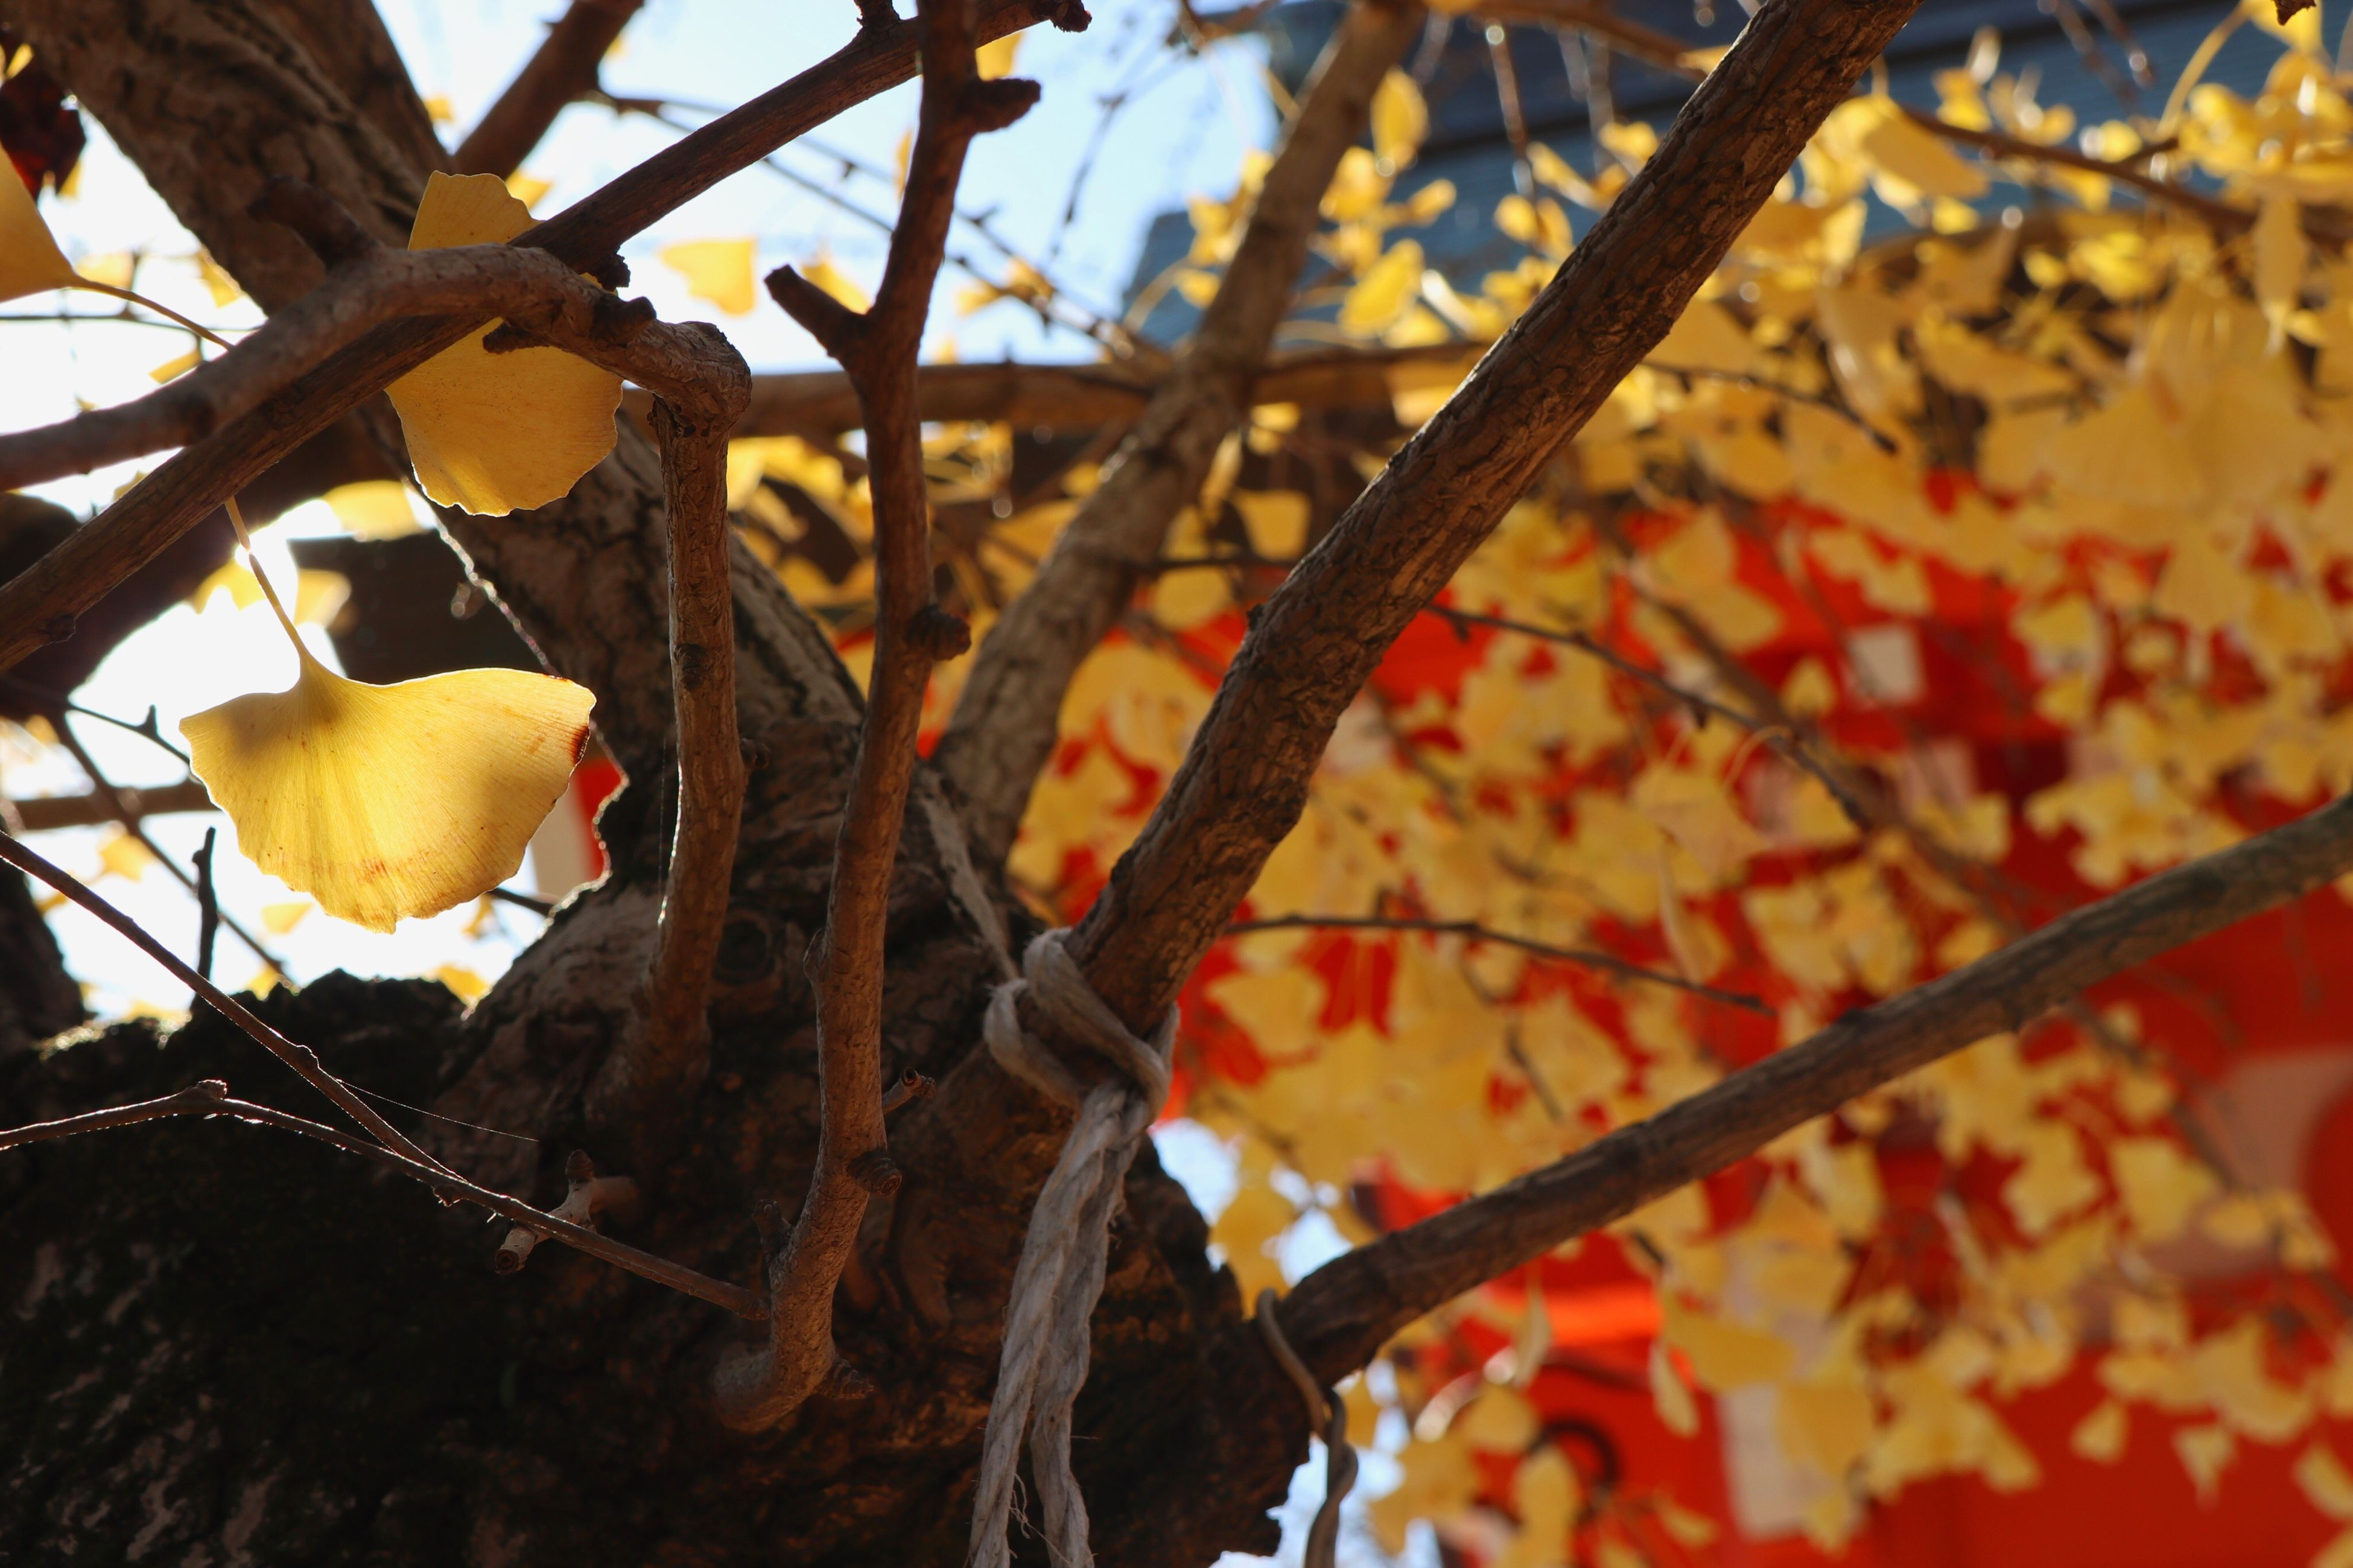 low angle view, tree, leaf, sunlight, hanging, autumn, change, no people, branch, yellow, day, nature, close-up, outdoors, food, freshness, sky